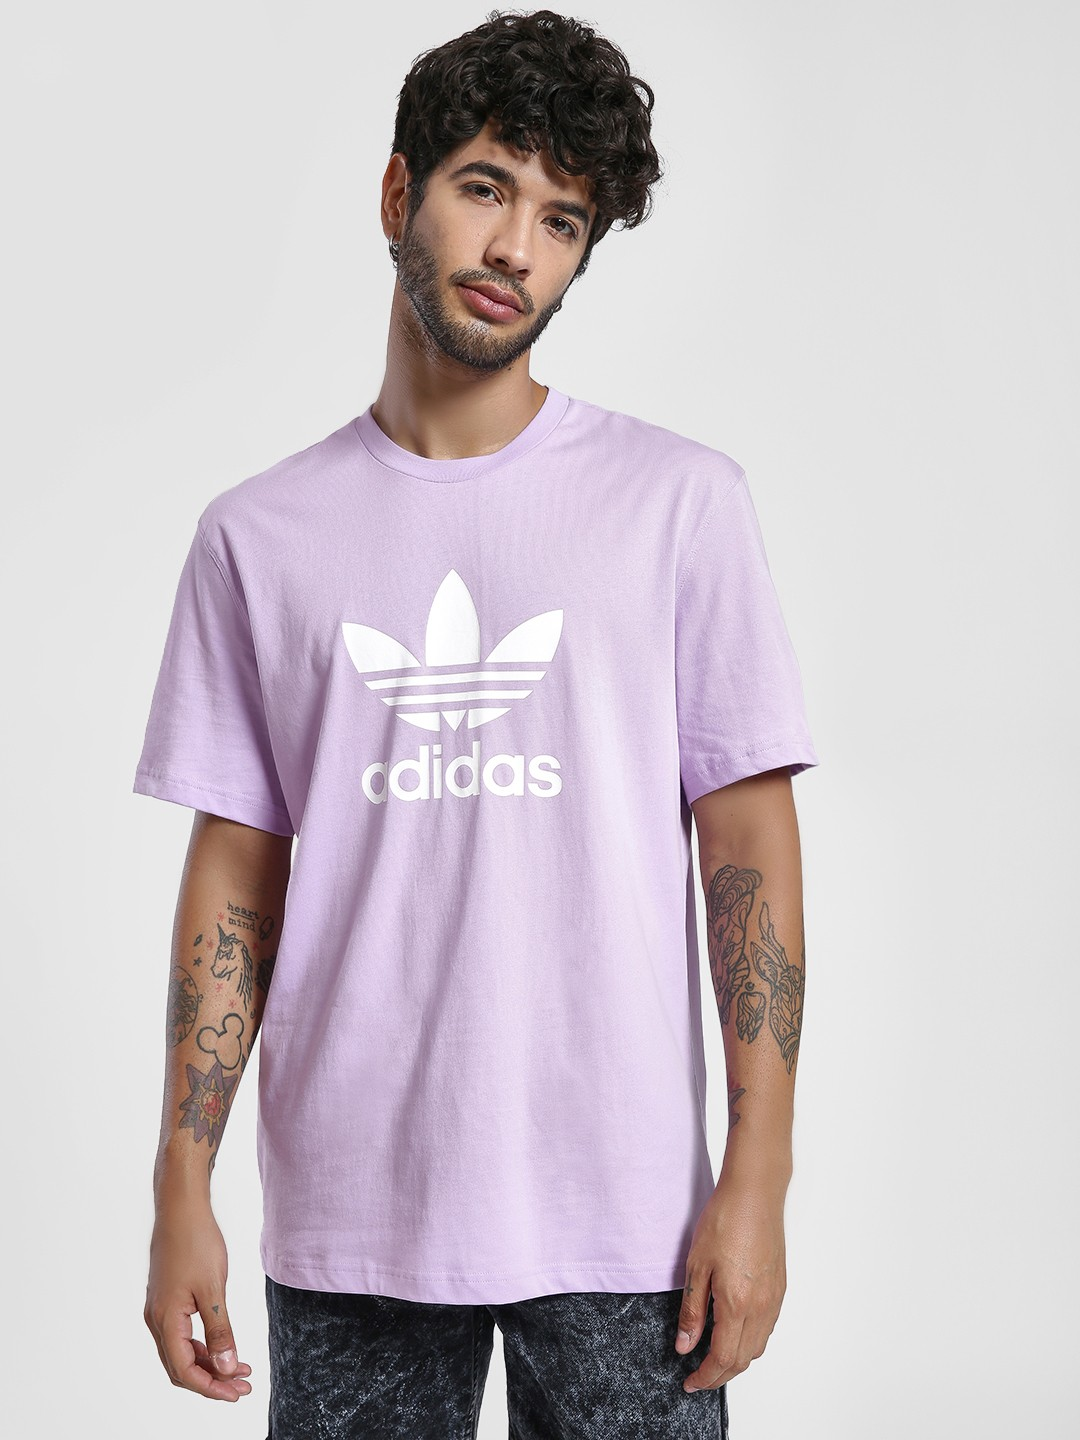 Adidas Originals Purple Trefoil T-Shirt 1